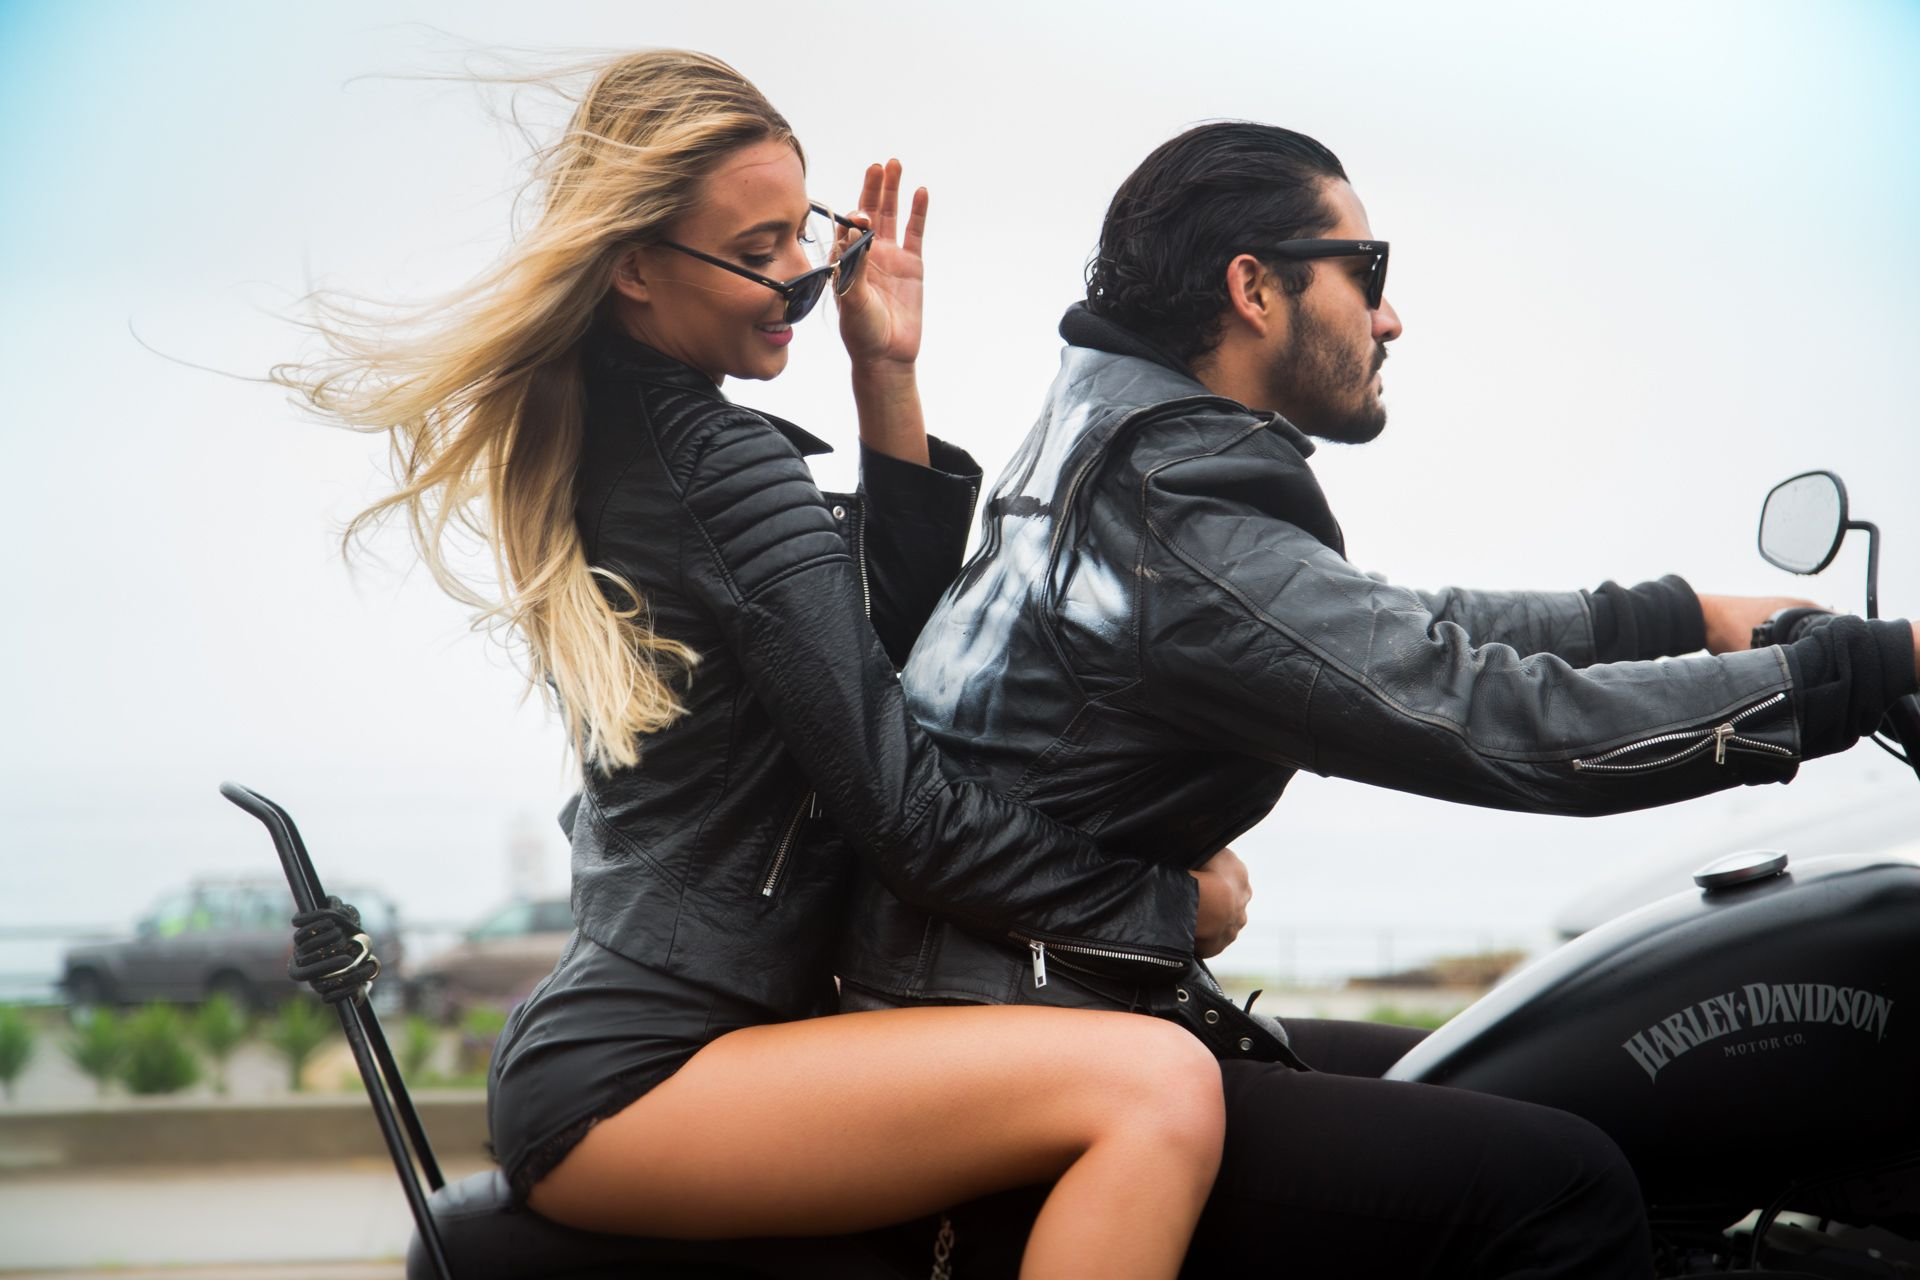 46ccc005947d7d Couple riding a motorcycle with leather jackets